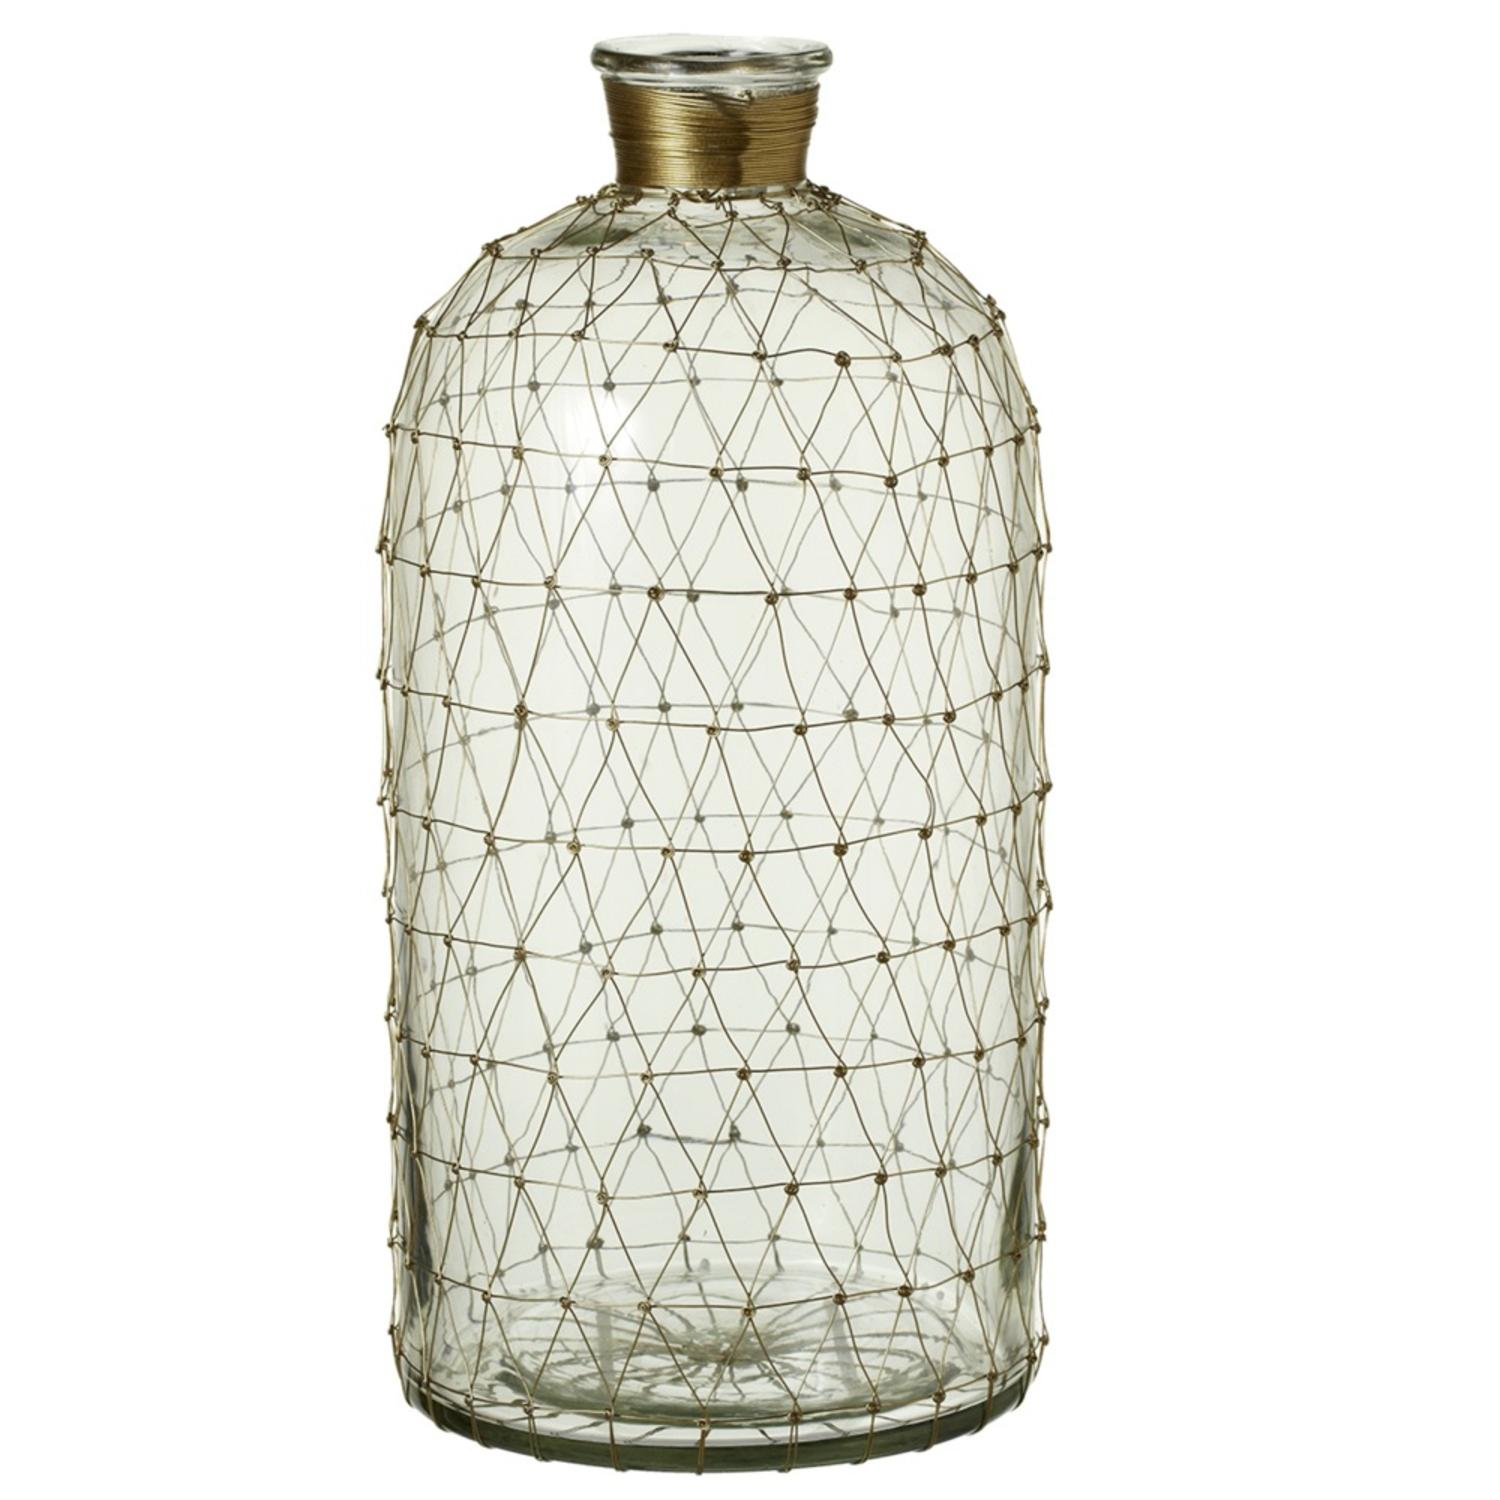 "15.5"" Clear Glass with Gold Wire Netting Large Decorative Bottle Vases by Diva At Home"